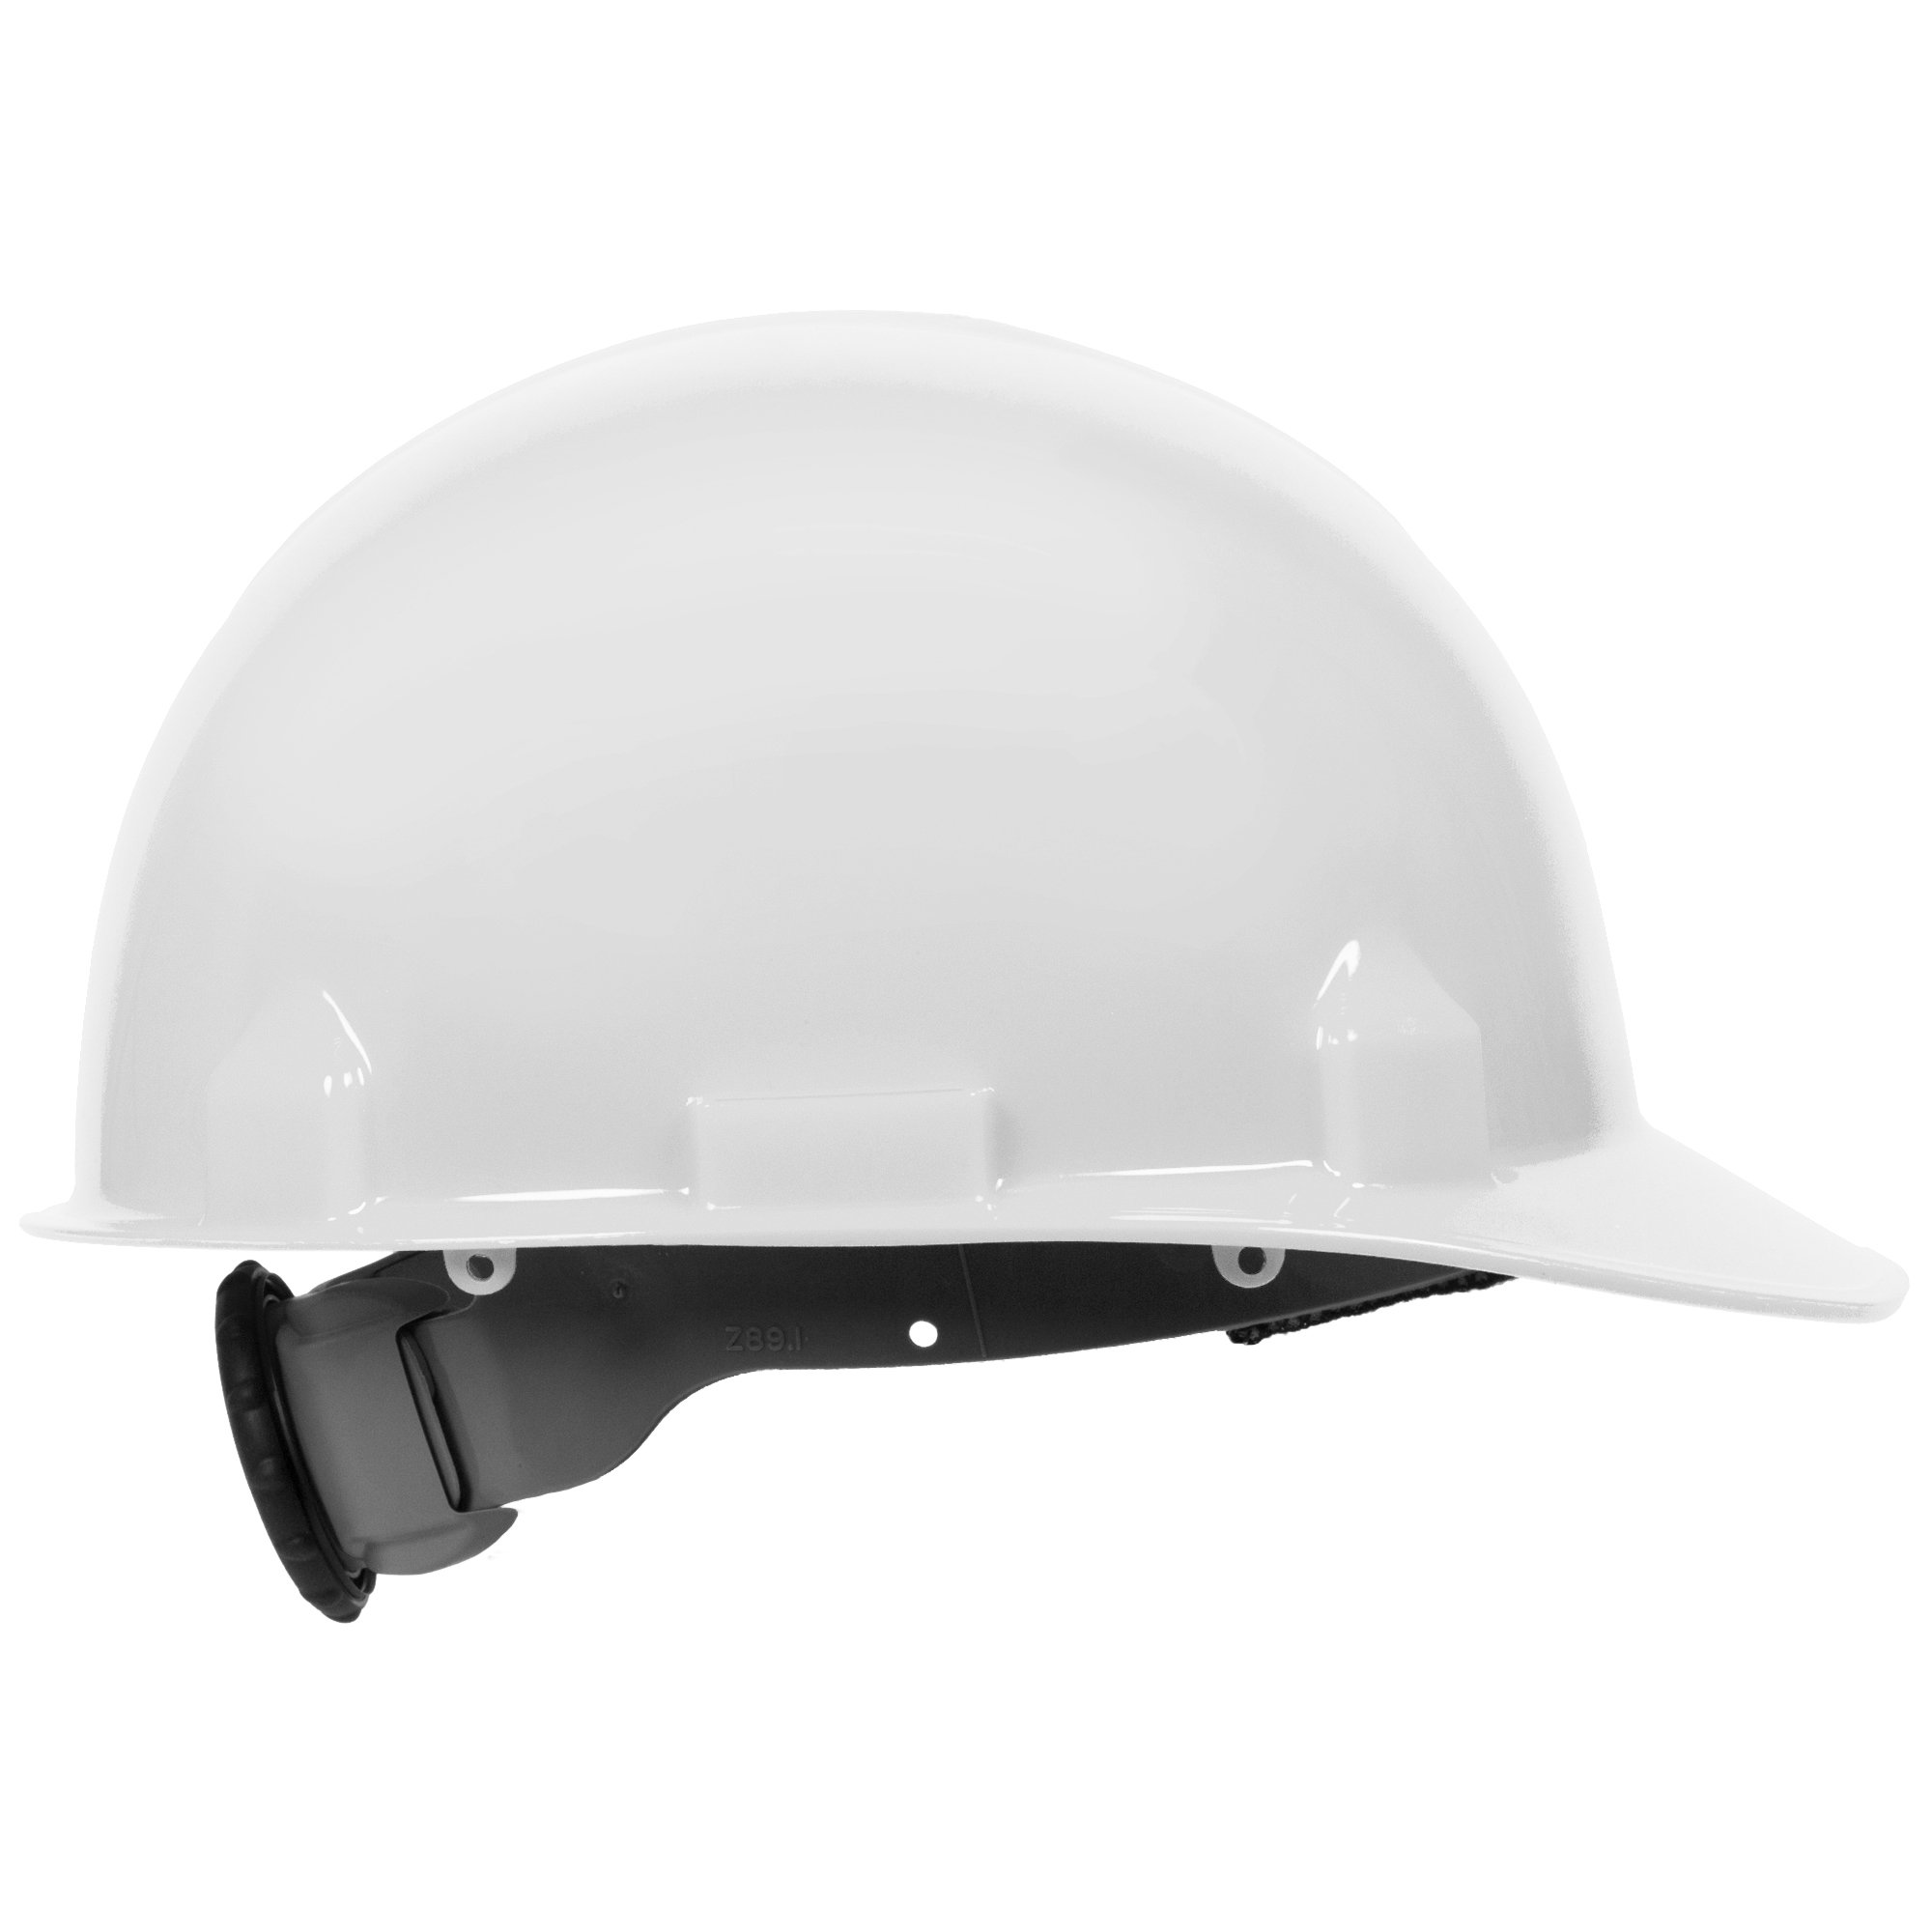 Jackson Safety SC-6 Hard Hat (14834), 4-Point Ratchet Suspension, Smooth Dome, Meets ANSI, White, 12 / Case by Jackson Safety (Image #3)